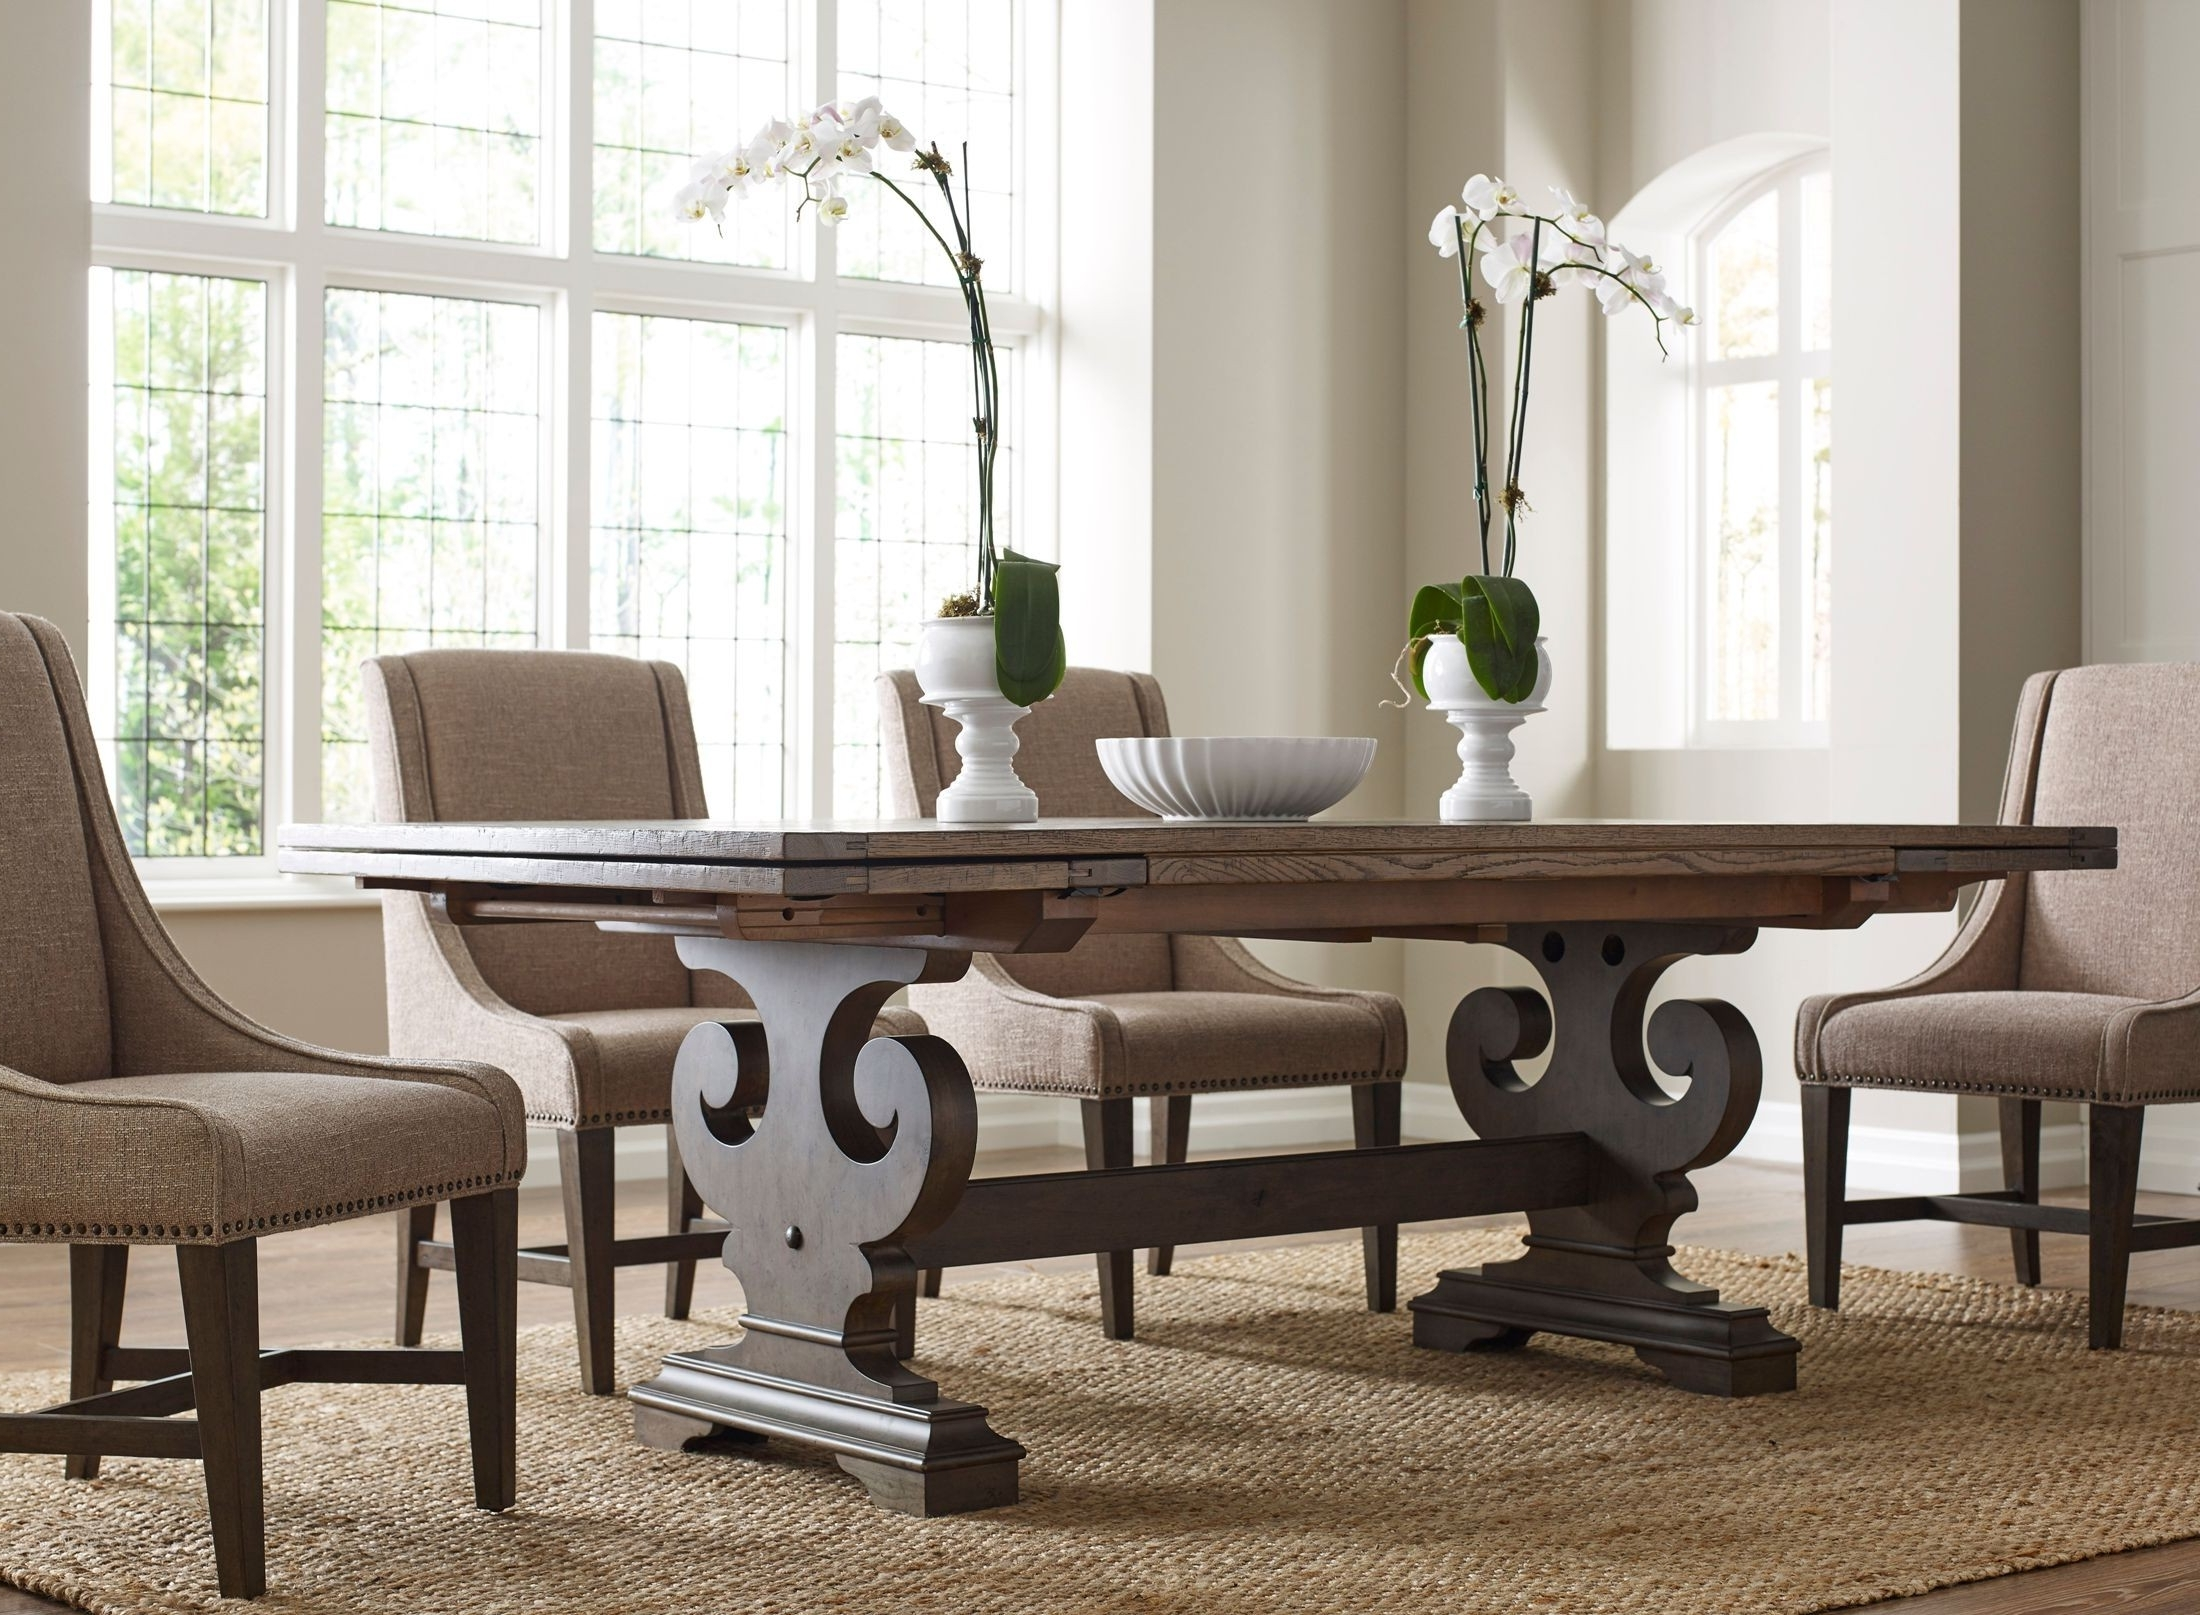 Most Recently Released Crawford Rectangle Dining Tables Pertaining To Kincaid Greyson Crawford Refractory Dining Room Set – Greyson (View 9 of 25)